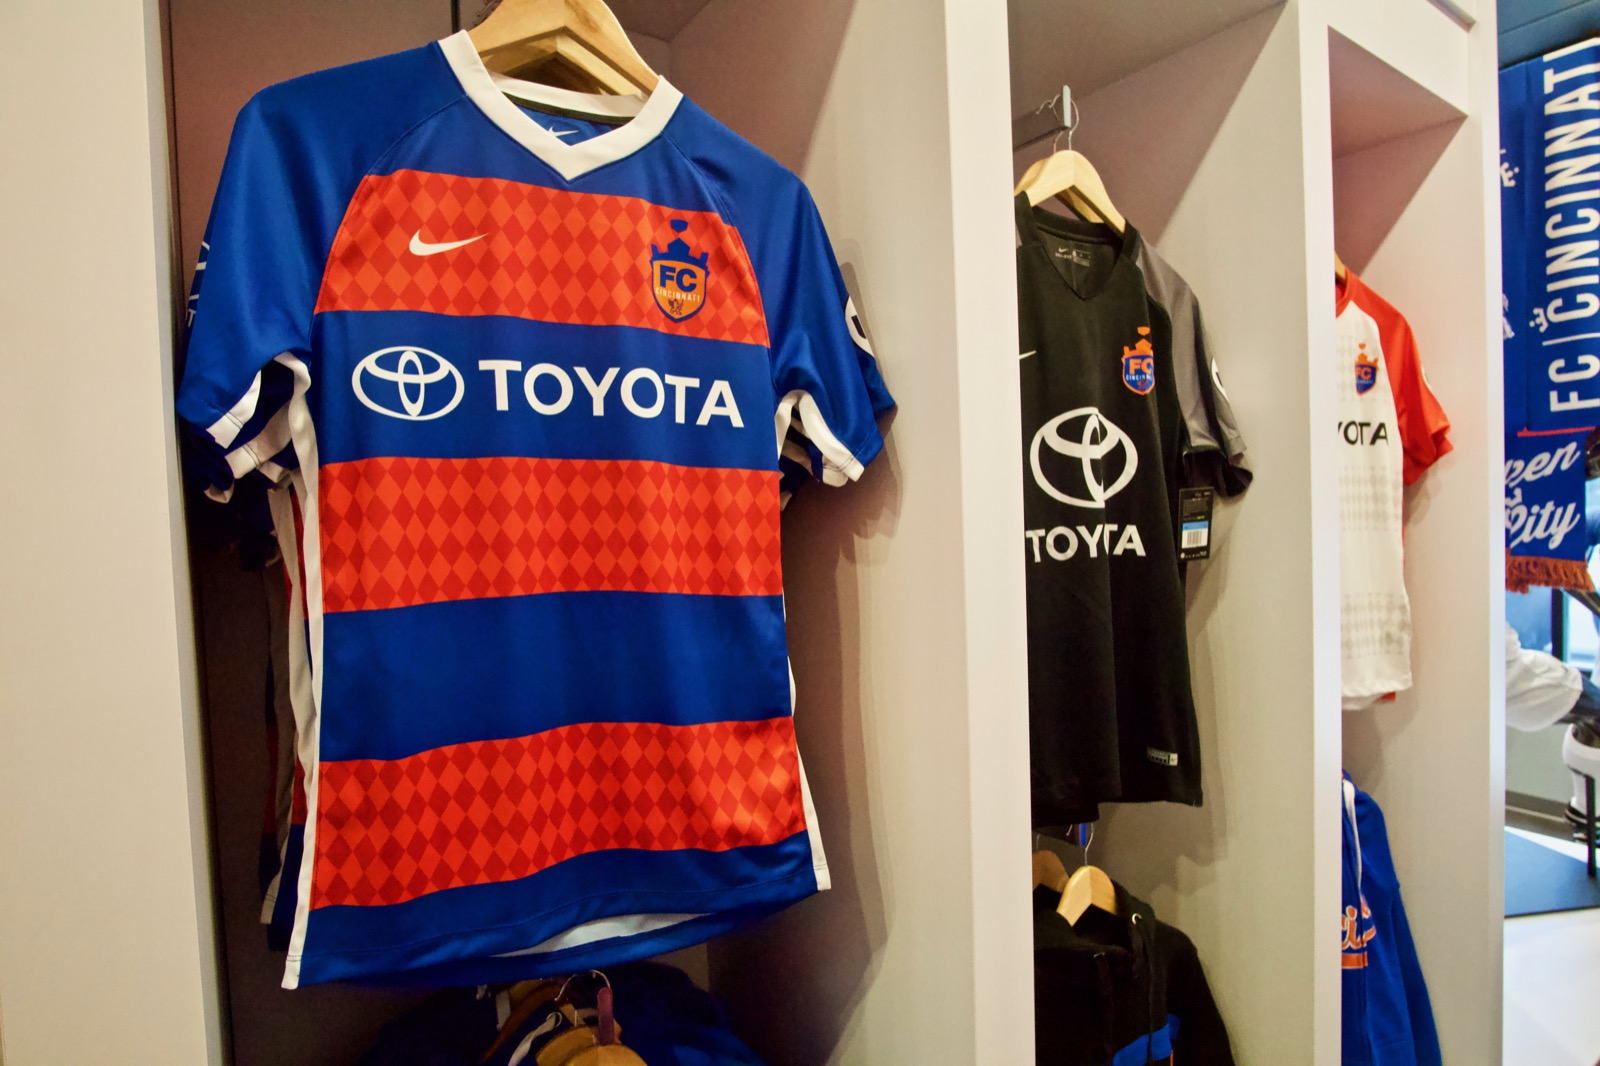 9d4bfb88b FC Cincinnati has used the lozenge on its uniforms and in marketing in the  past, and Shemony says that will continue — just not in the logo itself.